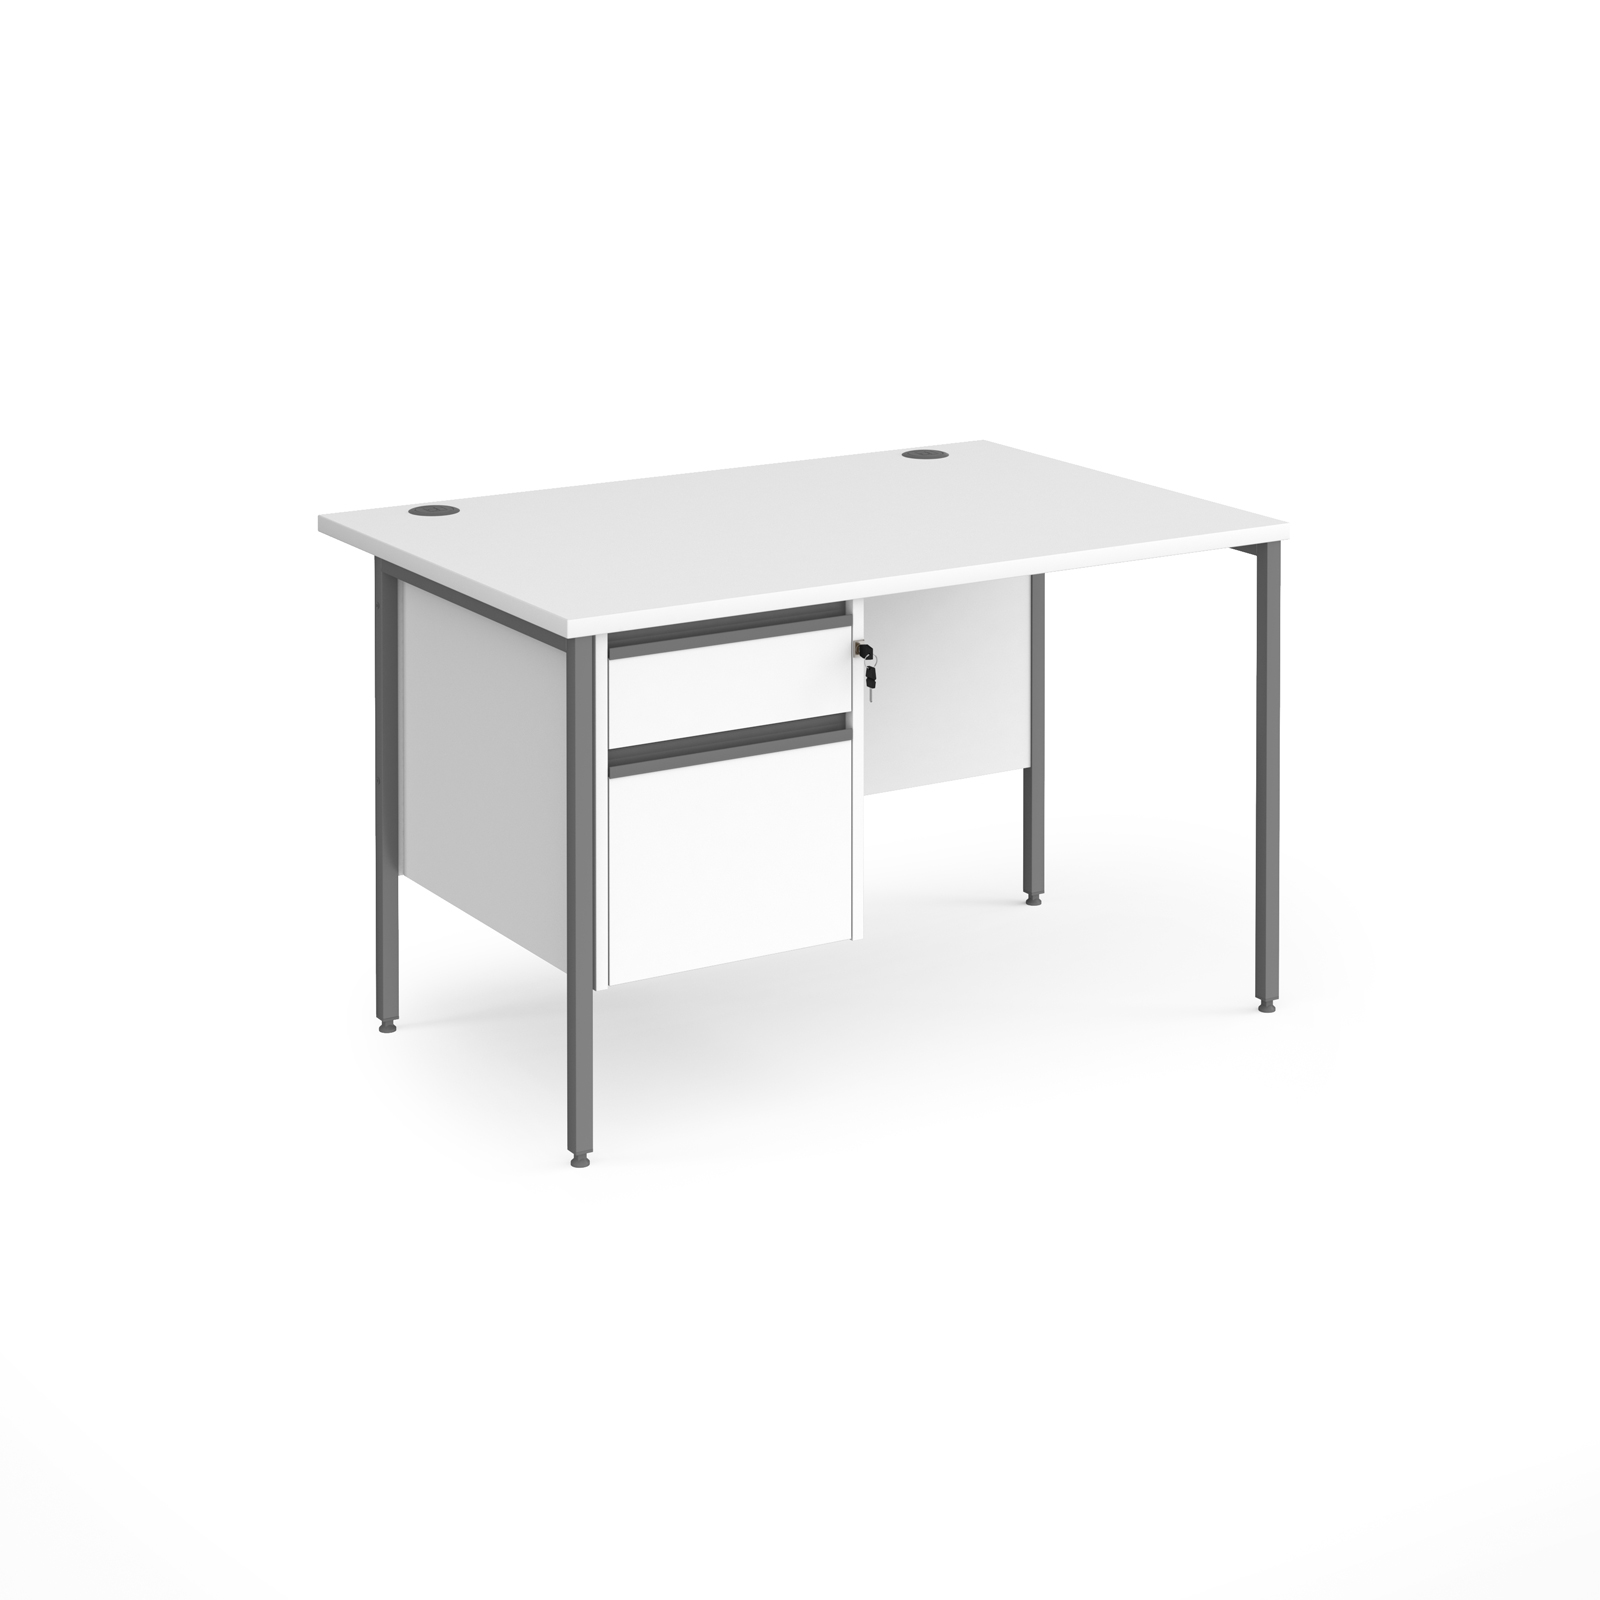 Contract 25 straight desk with 2 drawer pedestal and graphite H-Frame leg 1200mm x 800mm - white top